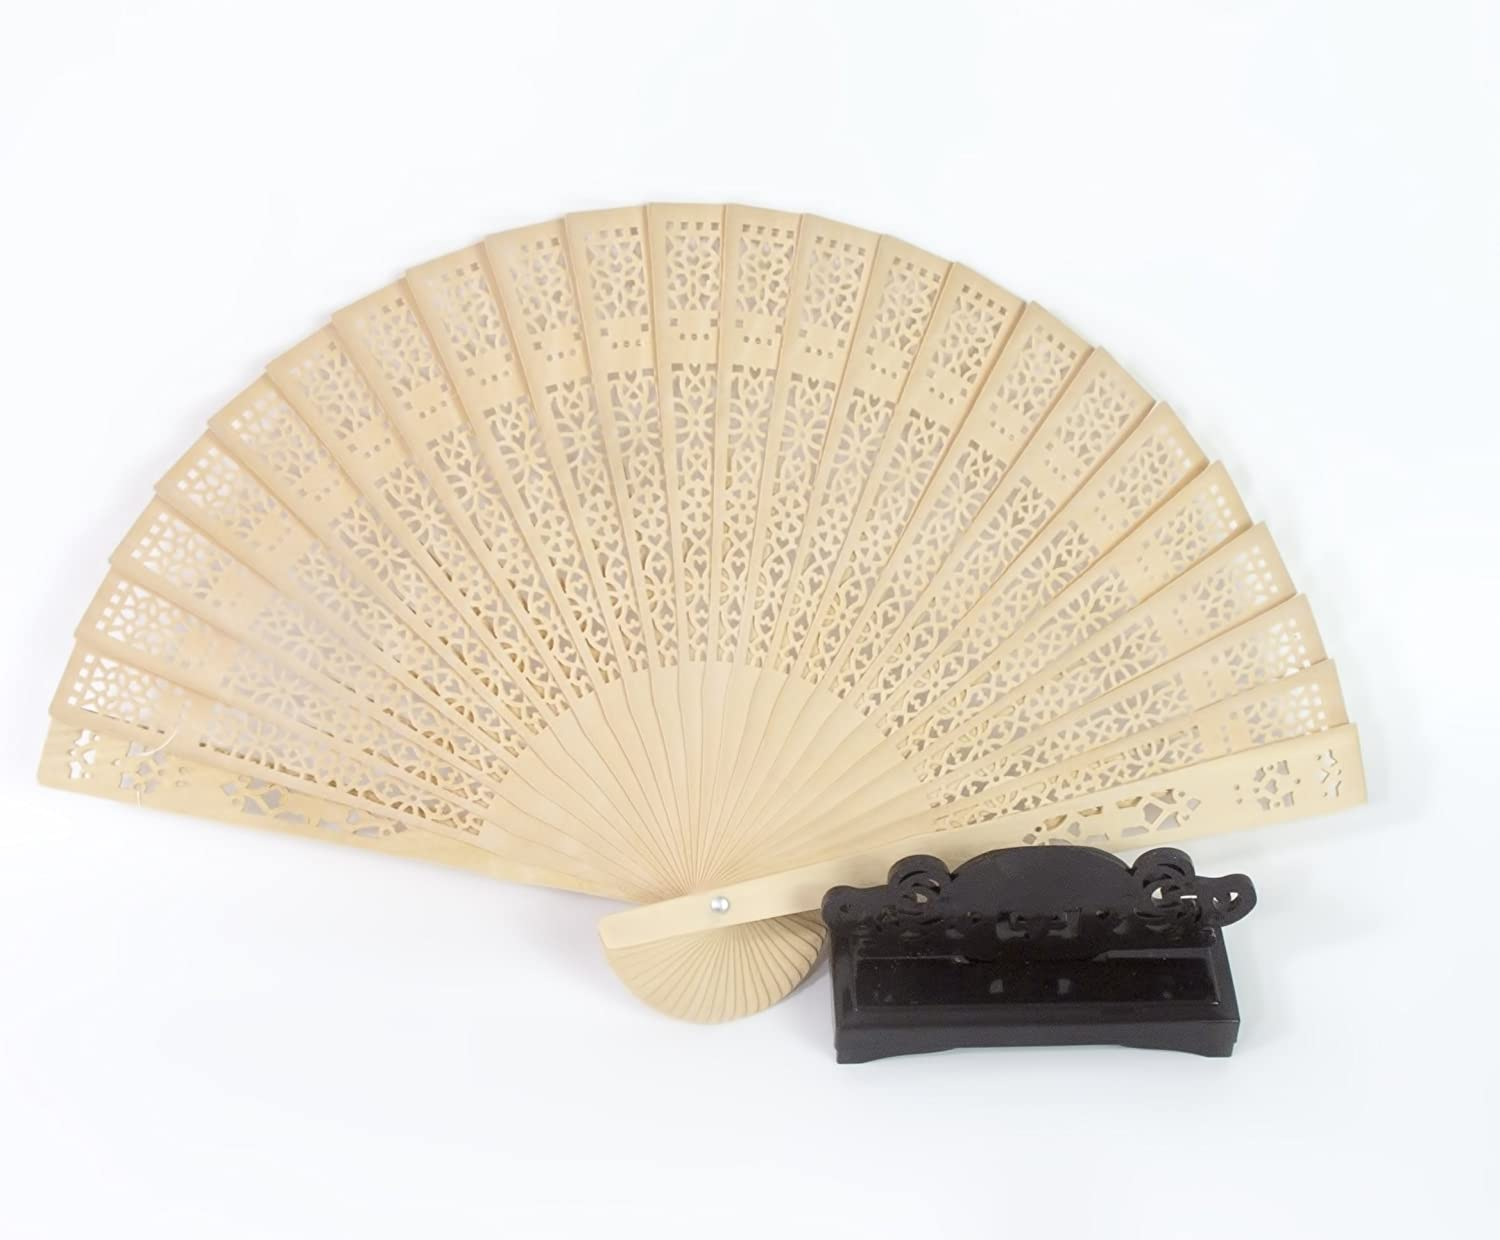 All In One Chinese Scented Wooden Hand Held Folding Fans for Craft Home Wedding Party Event Decoration, Gifts (1pc with Fan Holder)